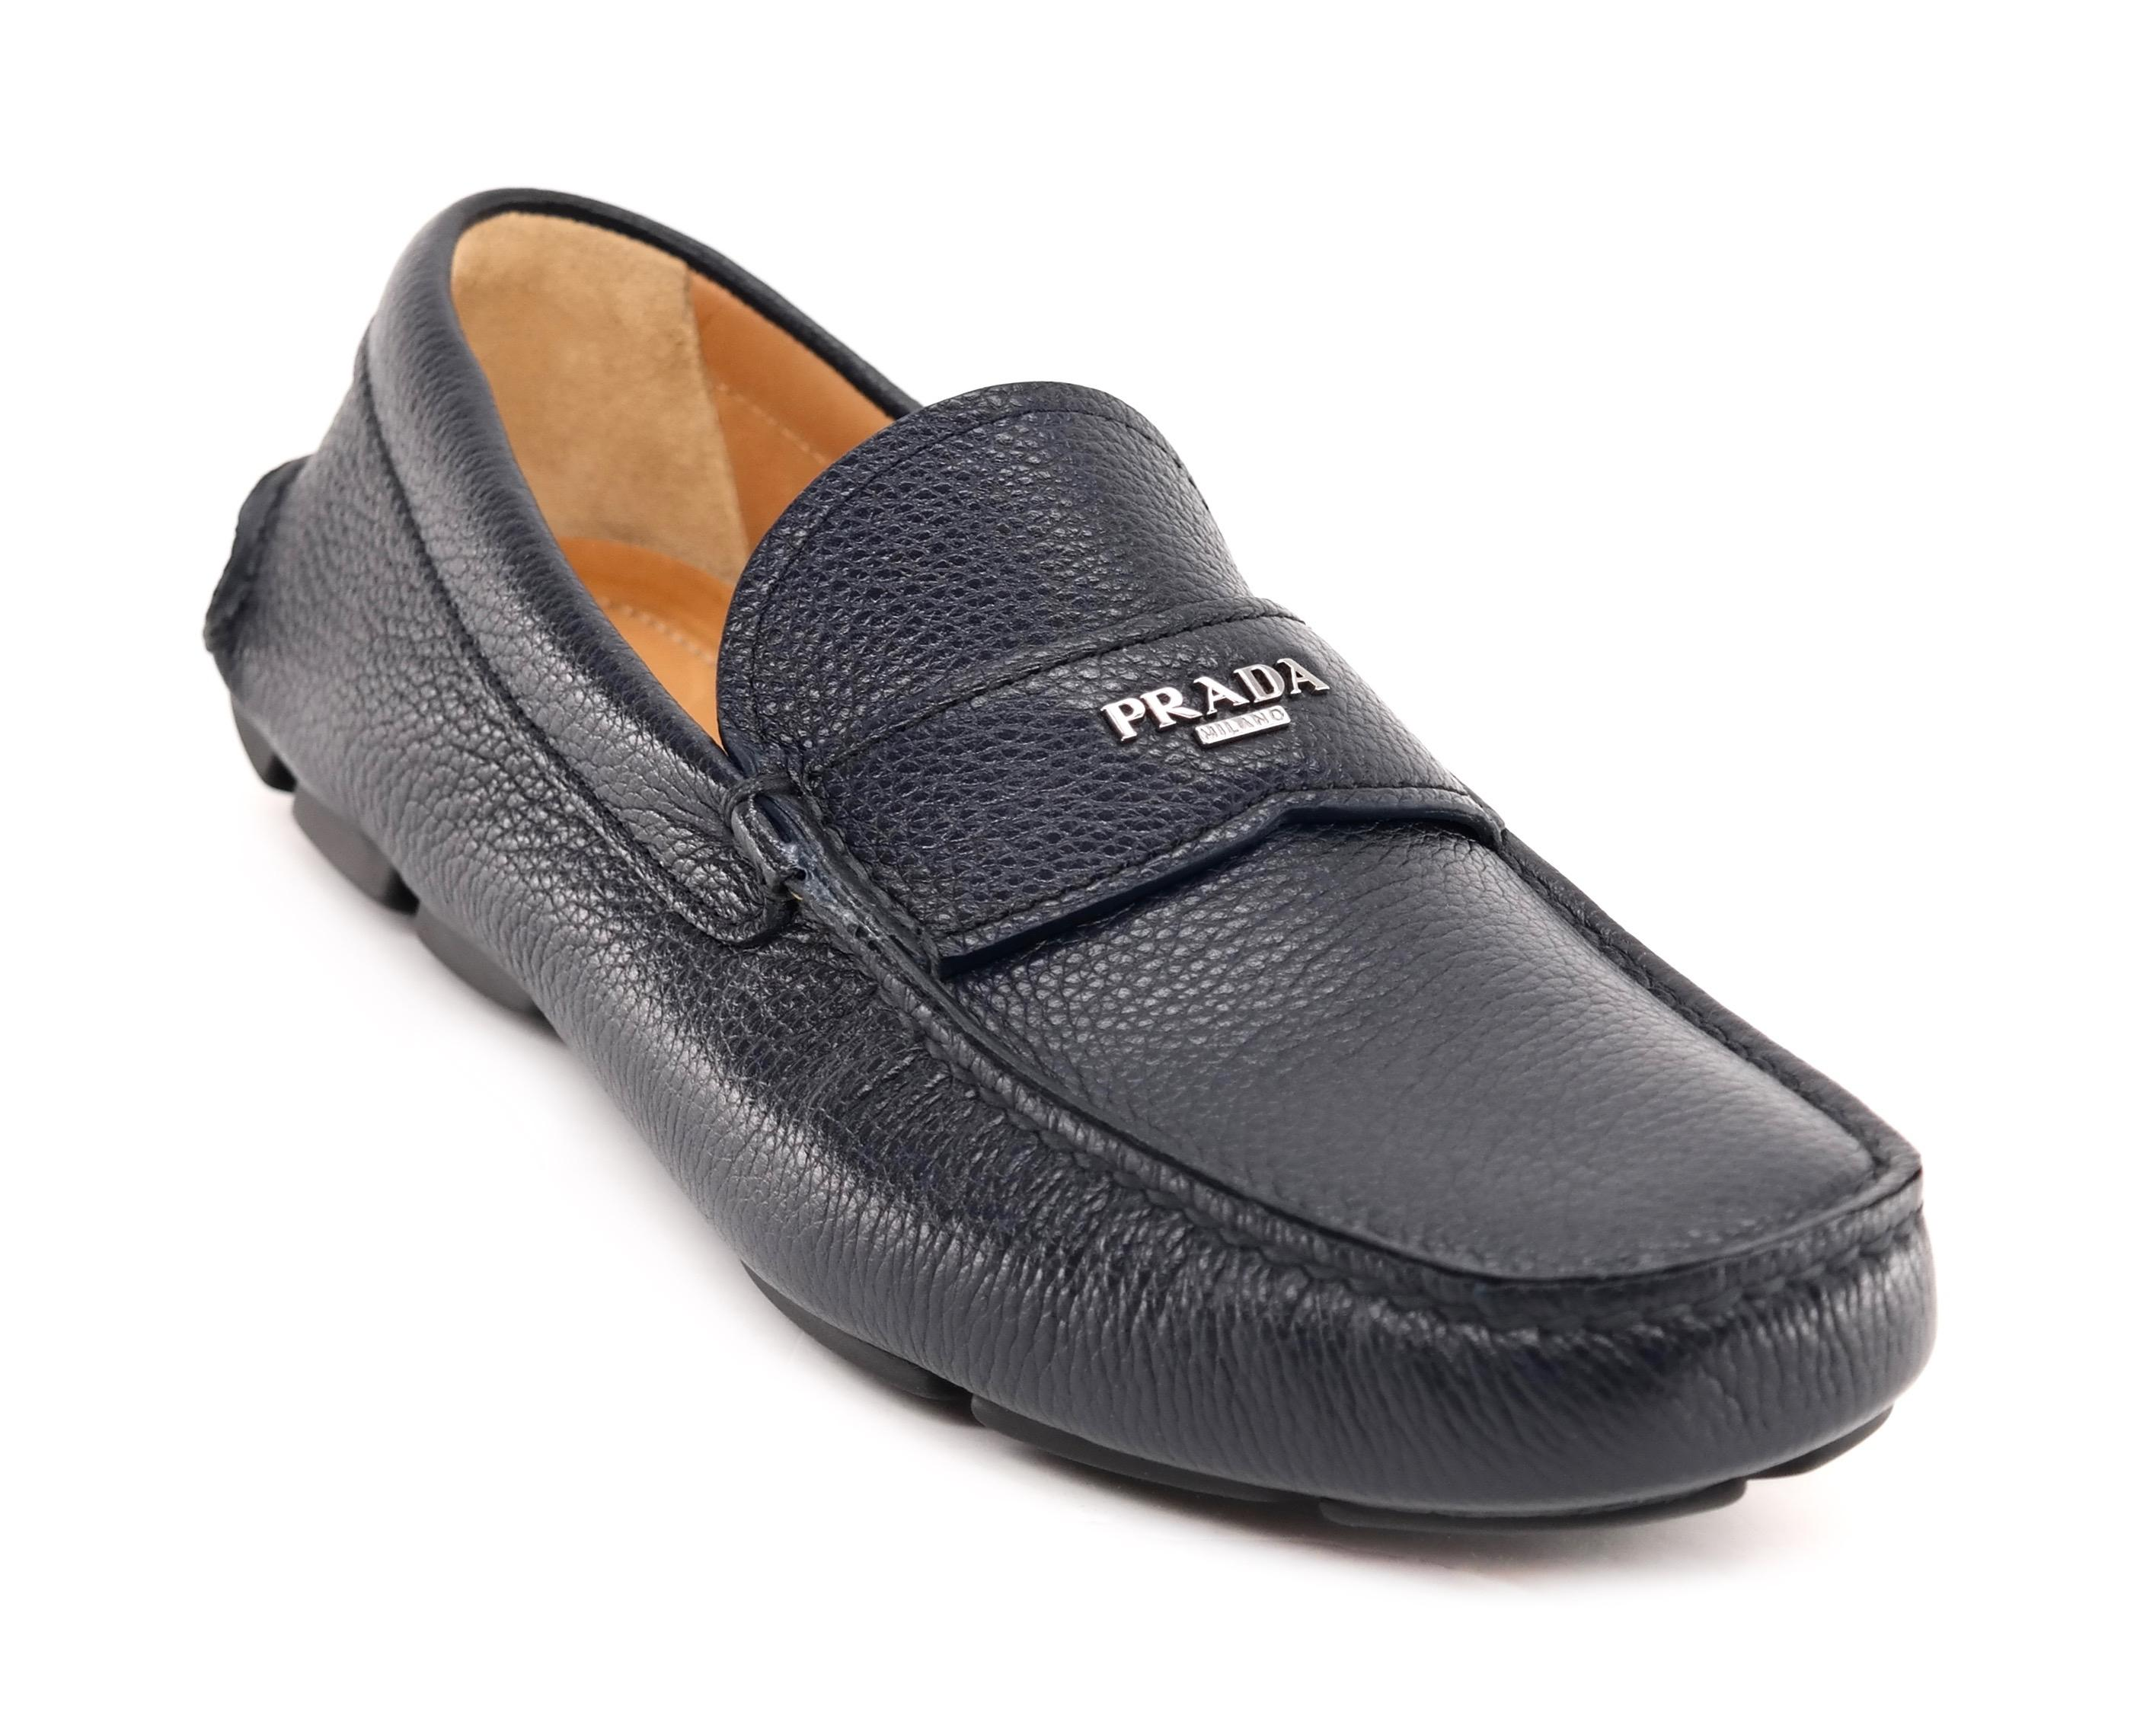 f1e3e5cd448 coupon code for prada black saffiano driving loafers b7e08 2490e  where can  i buy prada slip on drivers men navy blue flats 7a9e7 d6151